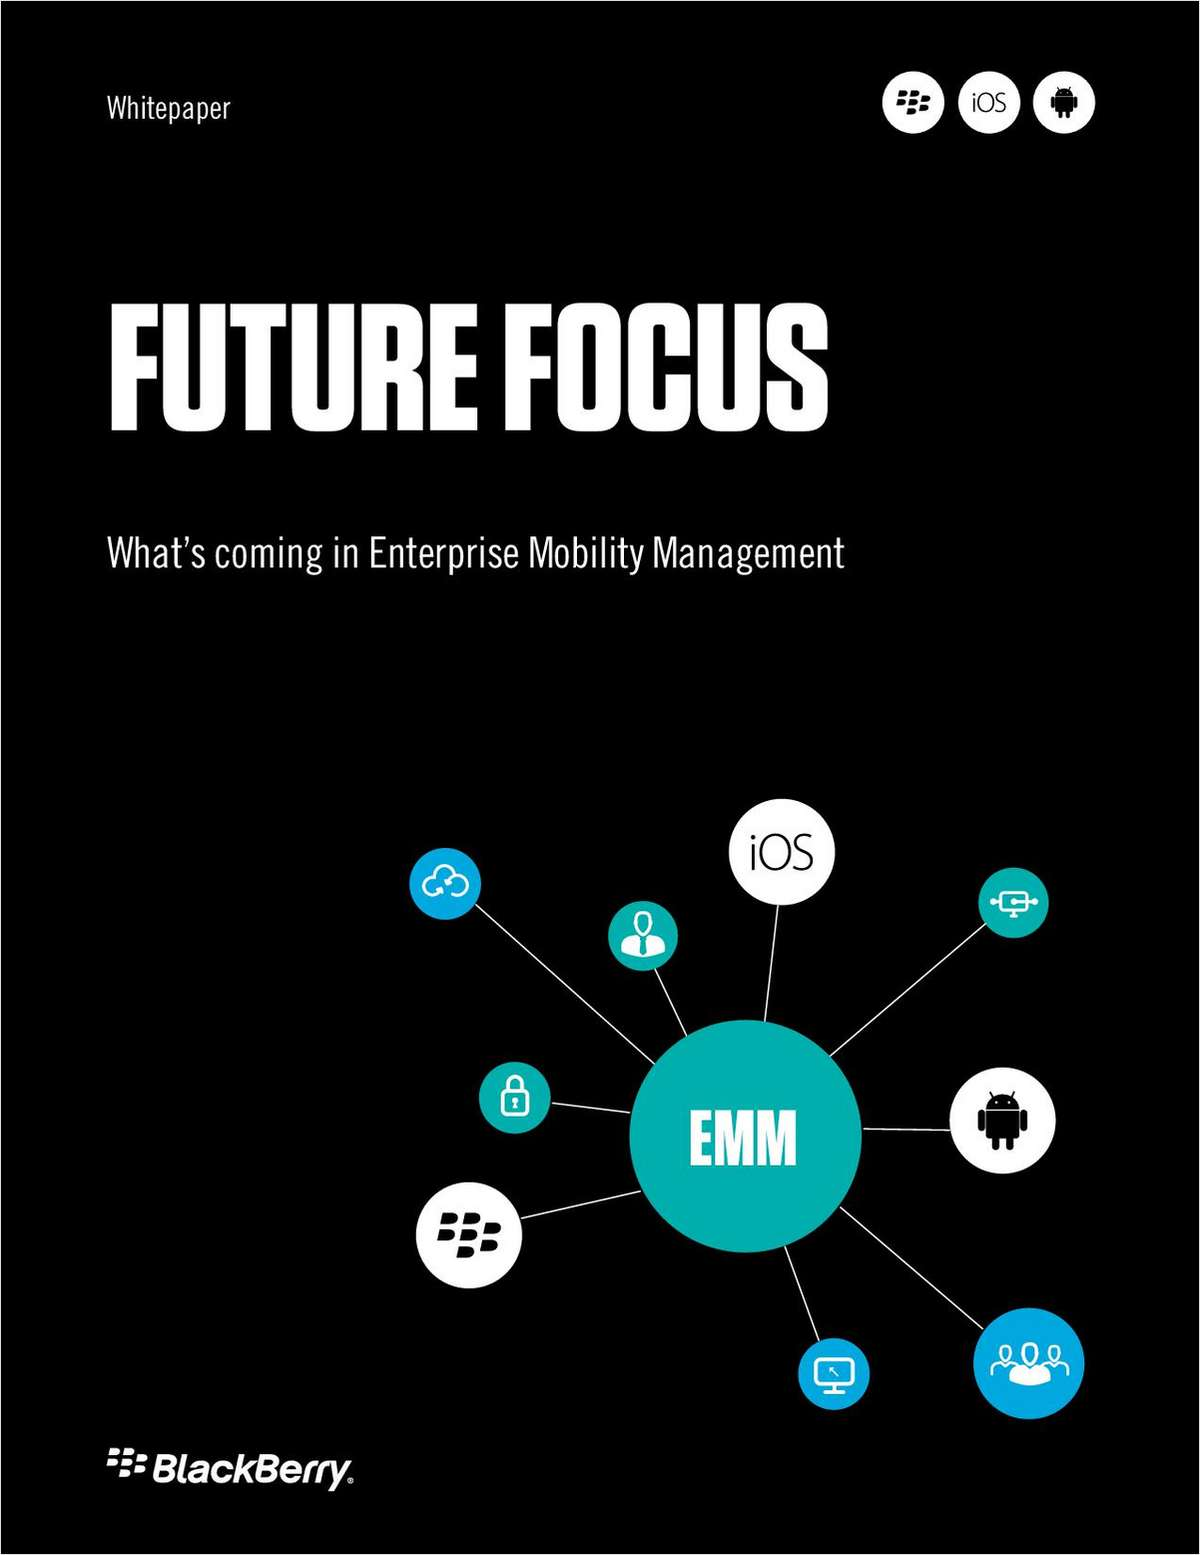 Future Focus: What's Coming in Enterprise Mobility Management (EMM)